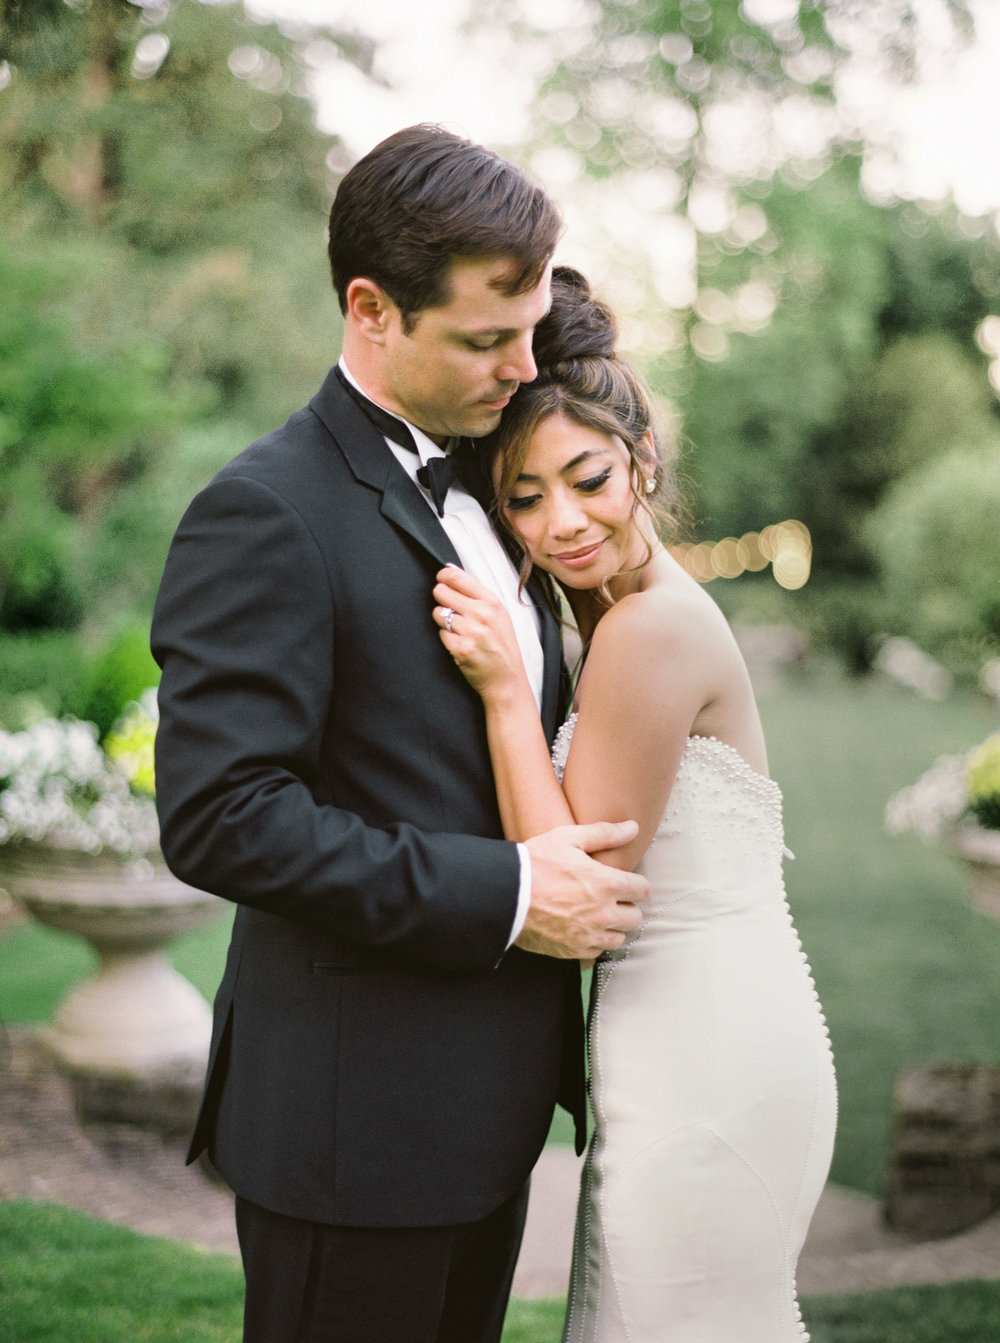 113OutliveCreative_Travel_Photographer_Videographer_Lewis&Clark_Oregon_Elegant_BlackTie_Destination_Wedding.jpg